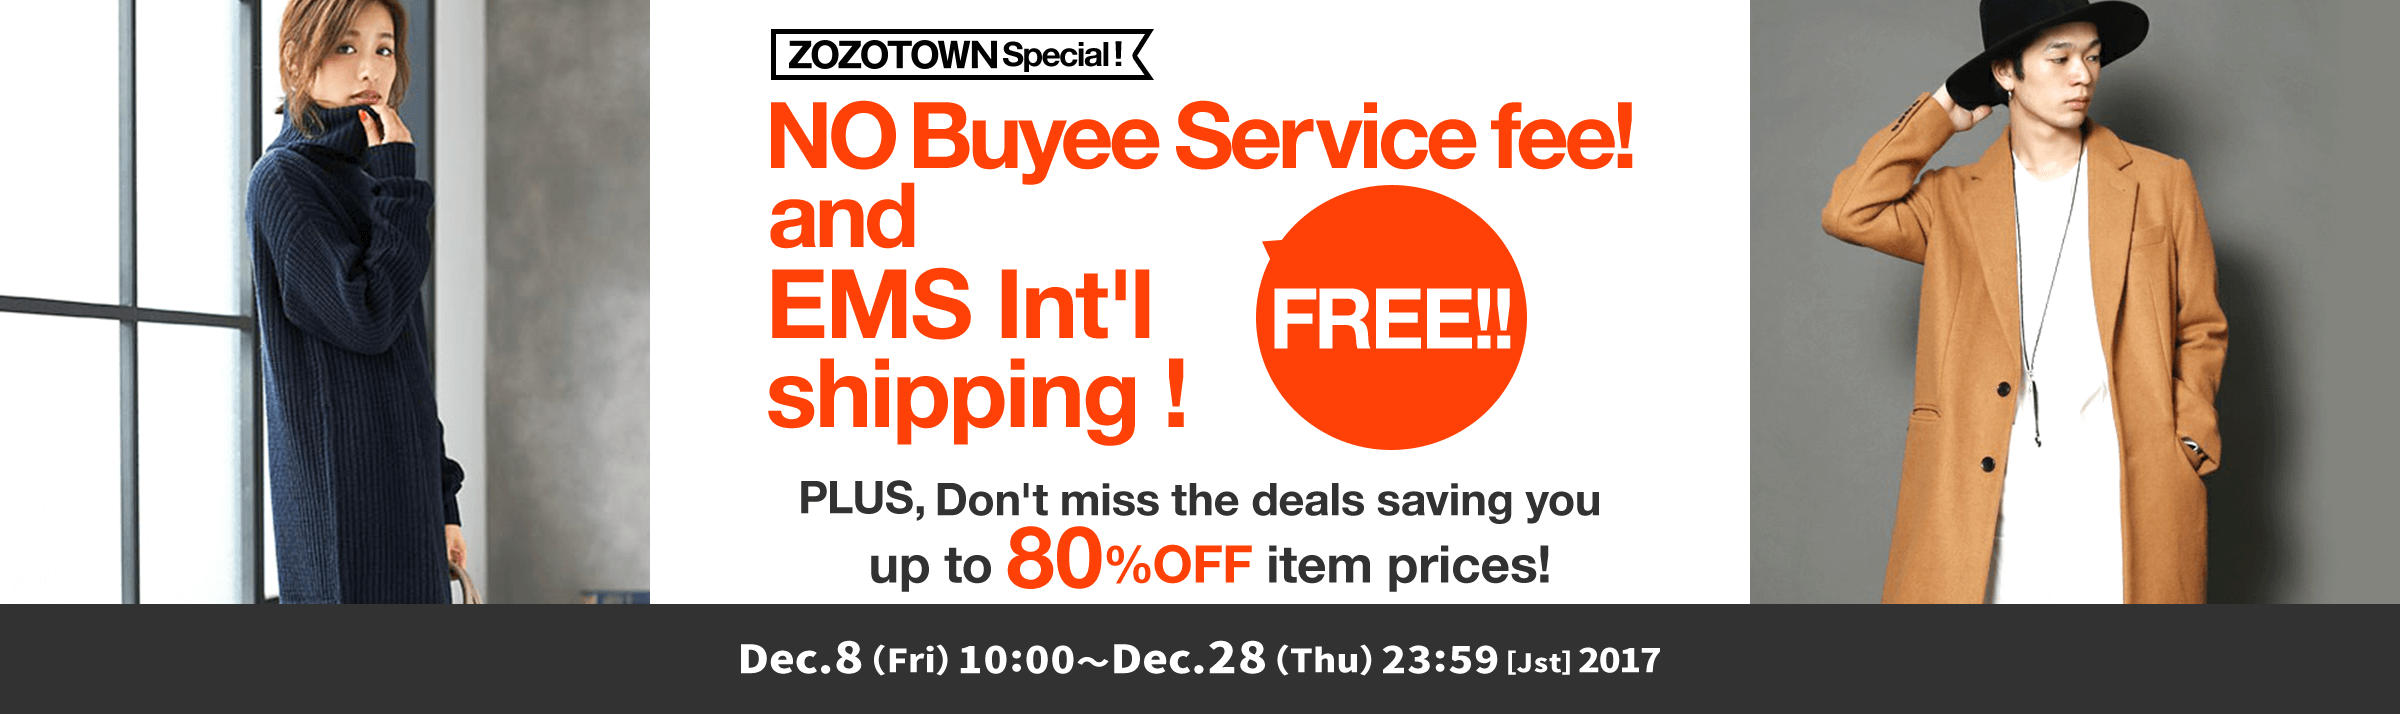 ZOZOTOWN Special! Free NO Buyee Service fee and EMS Int'l shipping.